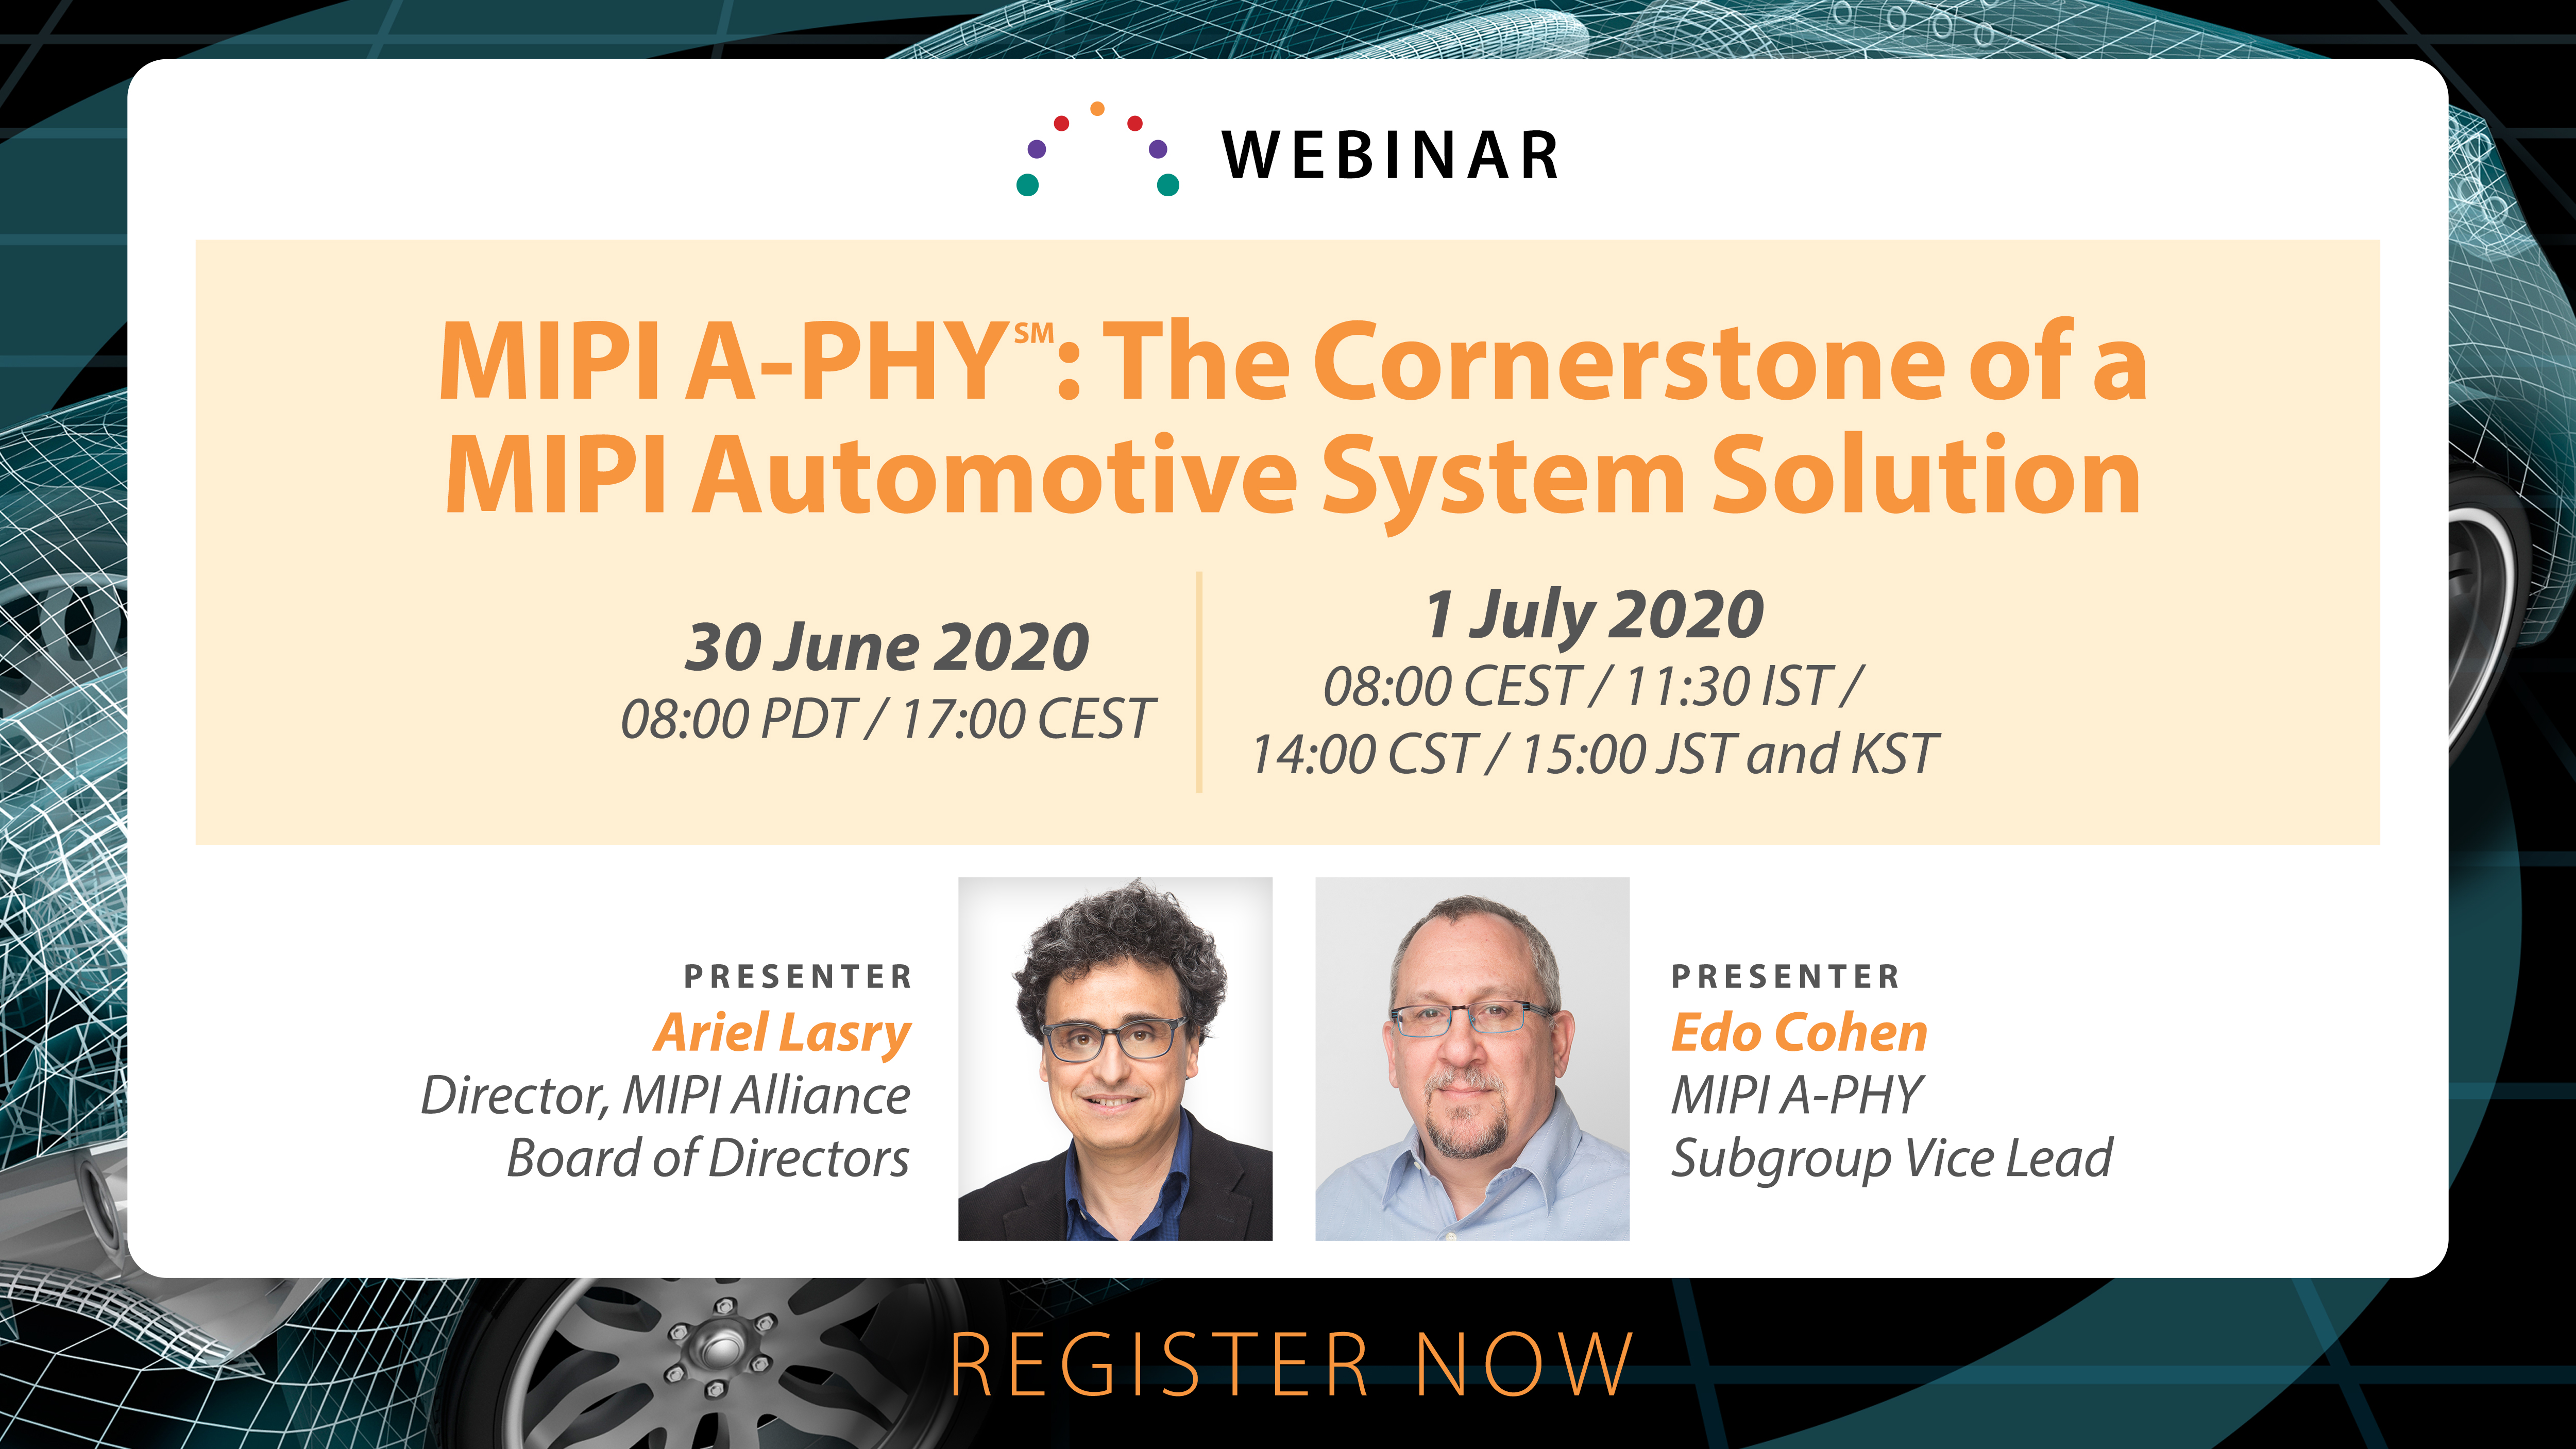 Upcoming MIPI A-PHY Webinar: A First Look at a New Automotive Solution